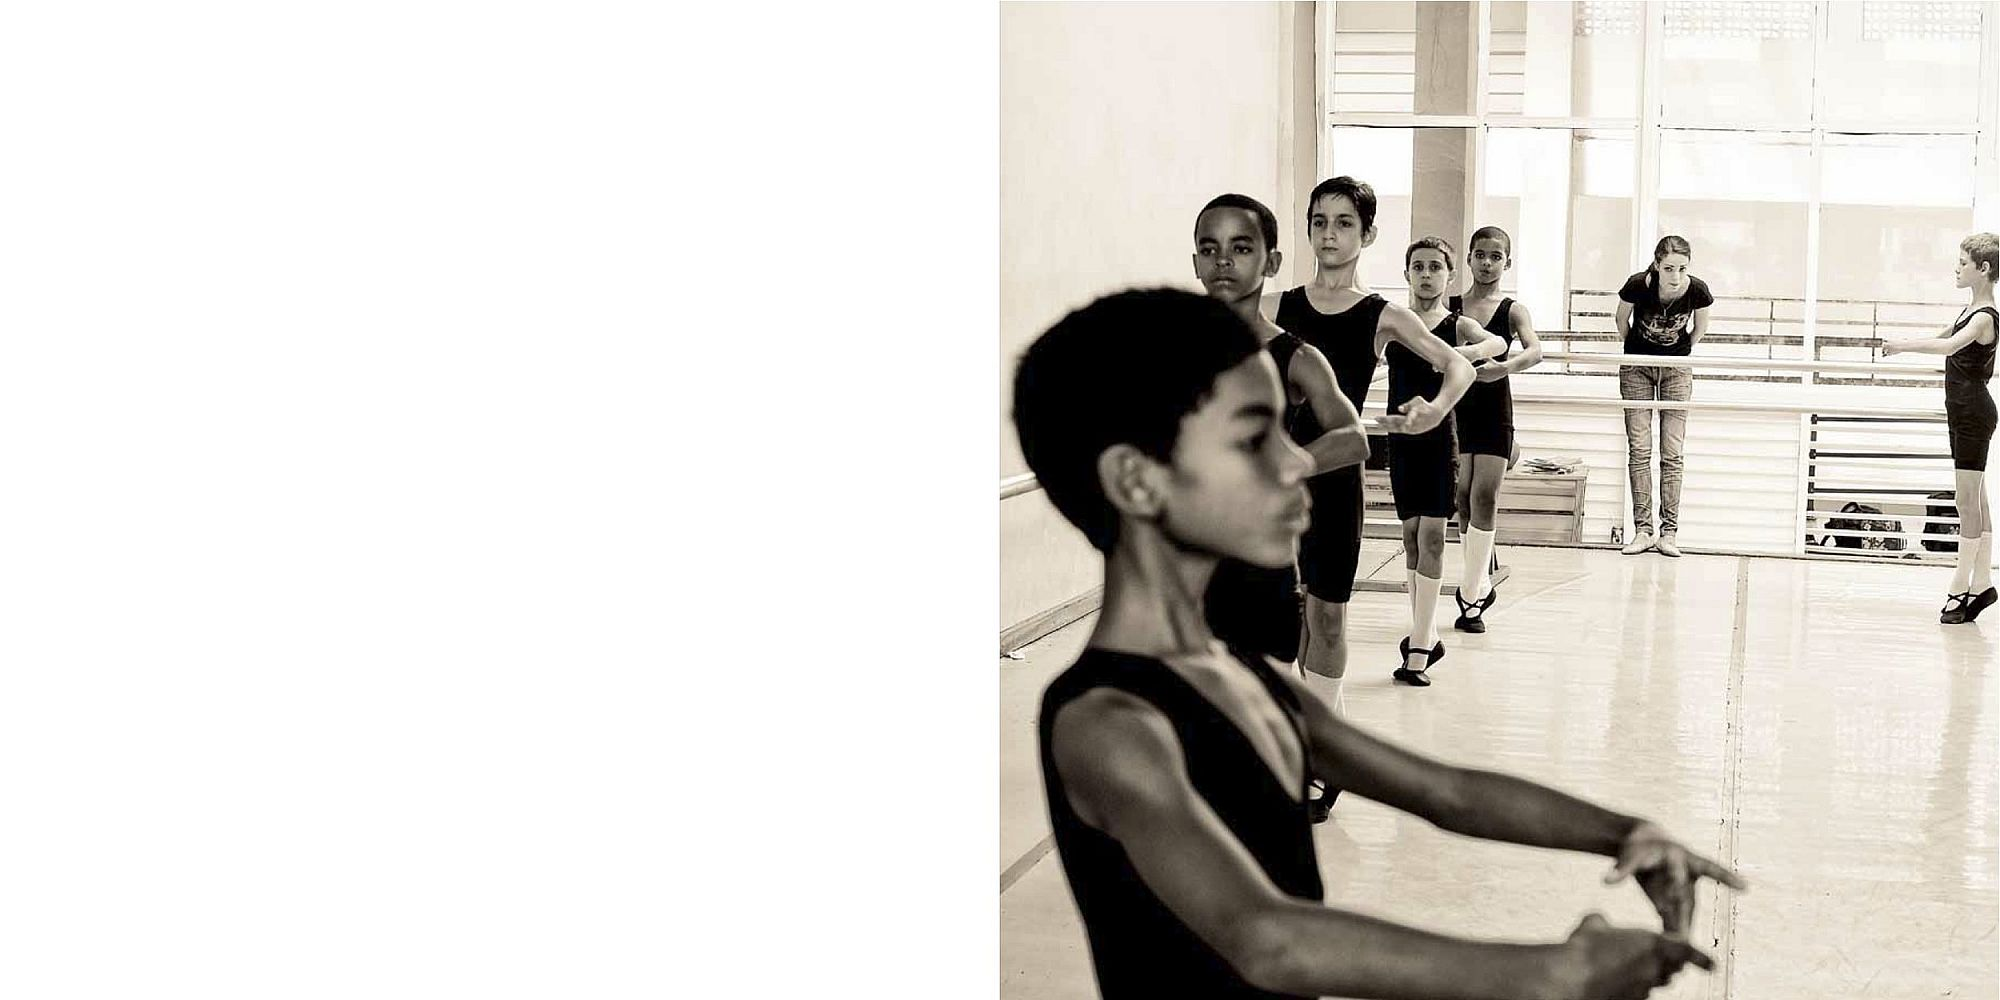 Rebekah Bowman: Portrait of the Cuban School of Ballet, Special Limited Edition (with Original Print) [SIGNED]